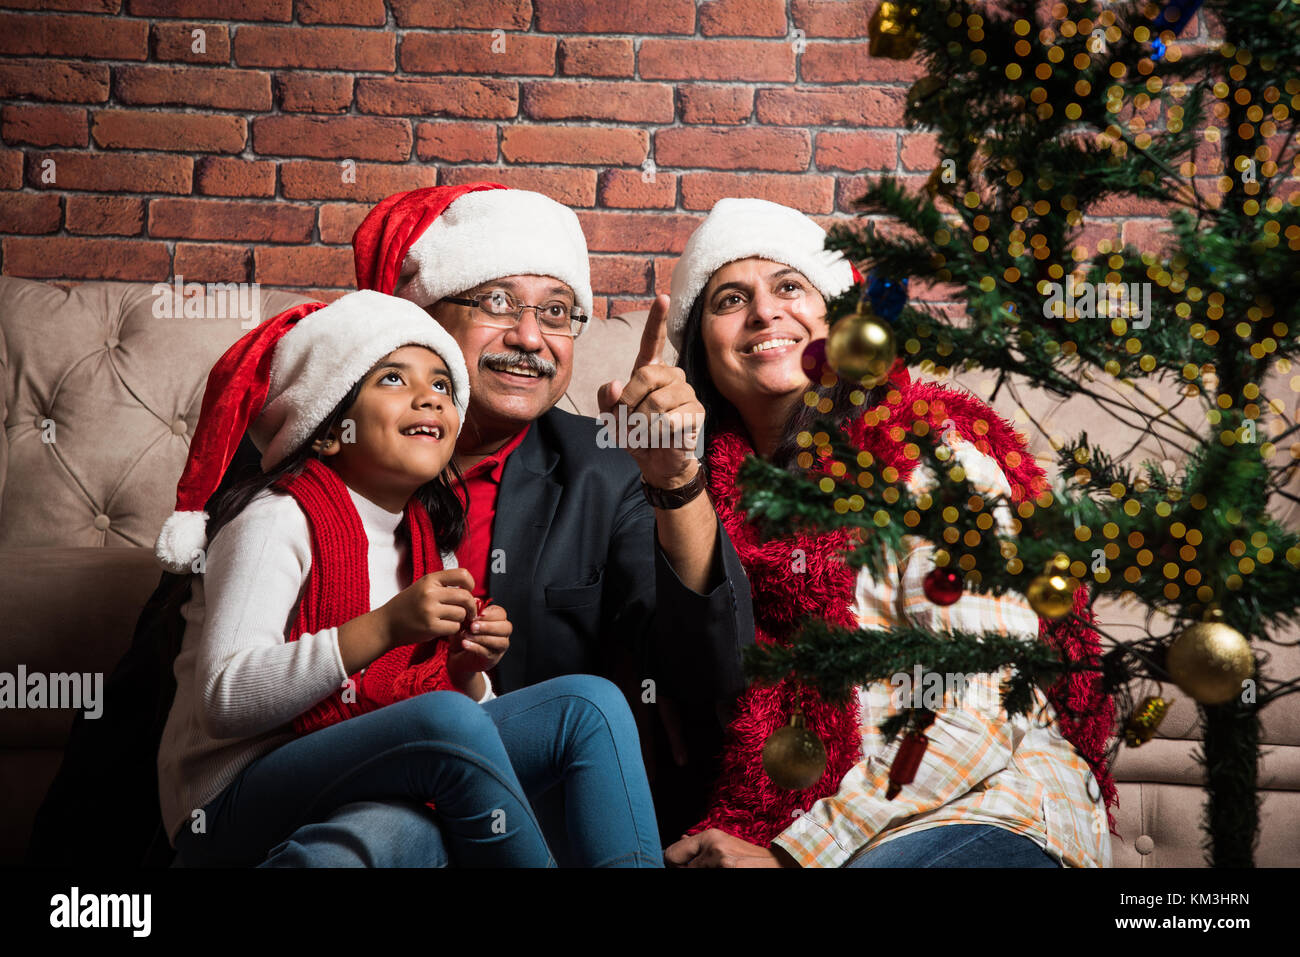 family holidays generation christmas and people concept smiling indian grandparents and granddaughter - People Decorating A Christmas Tree